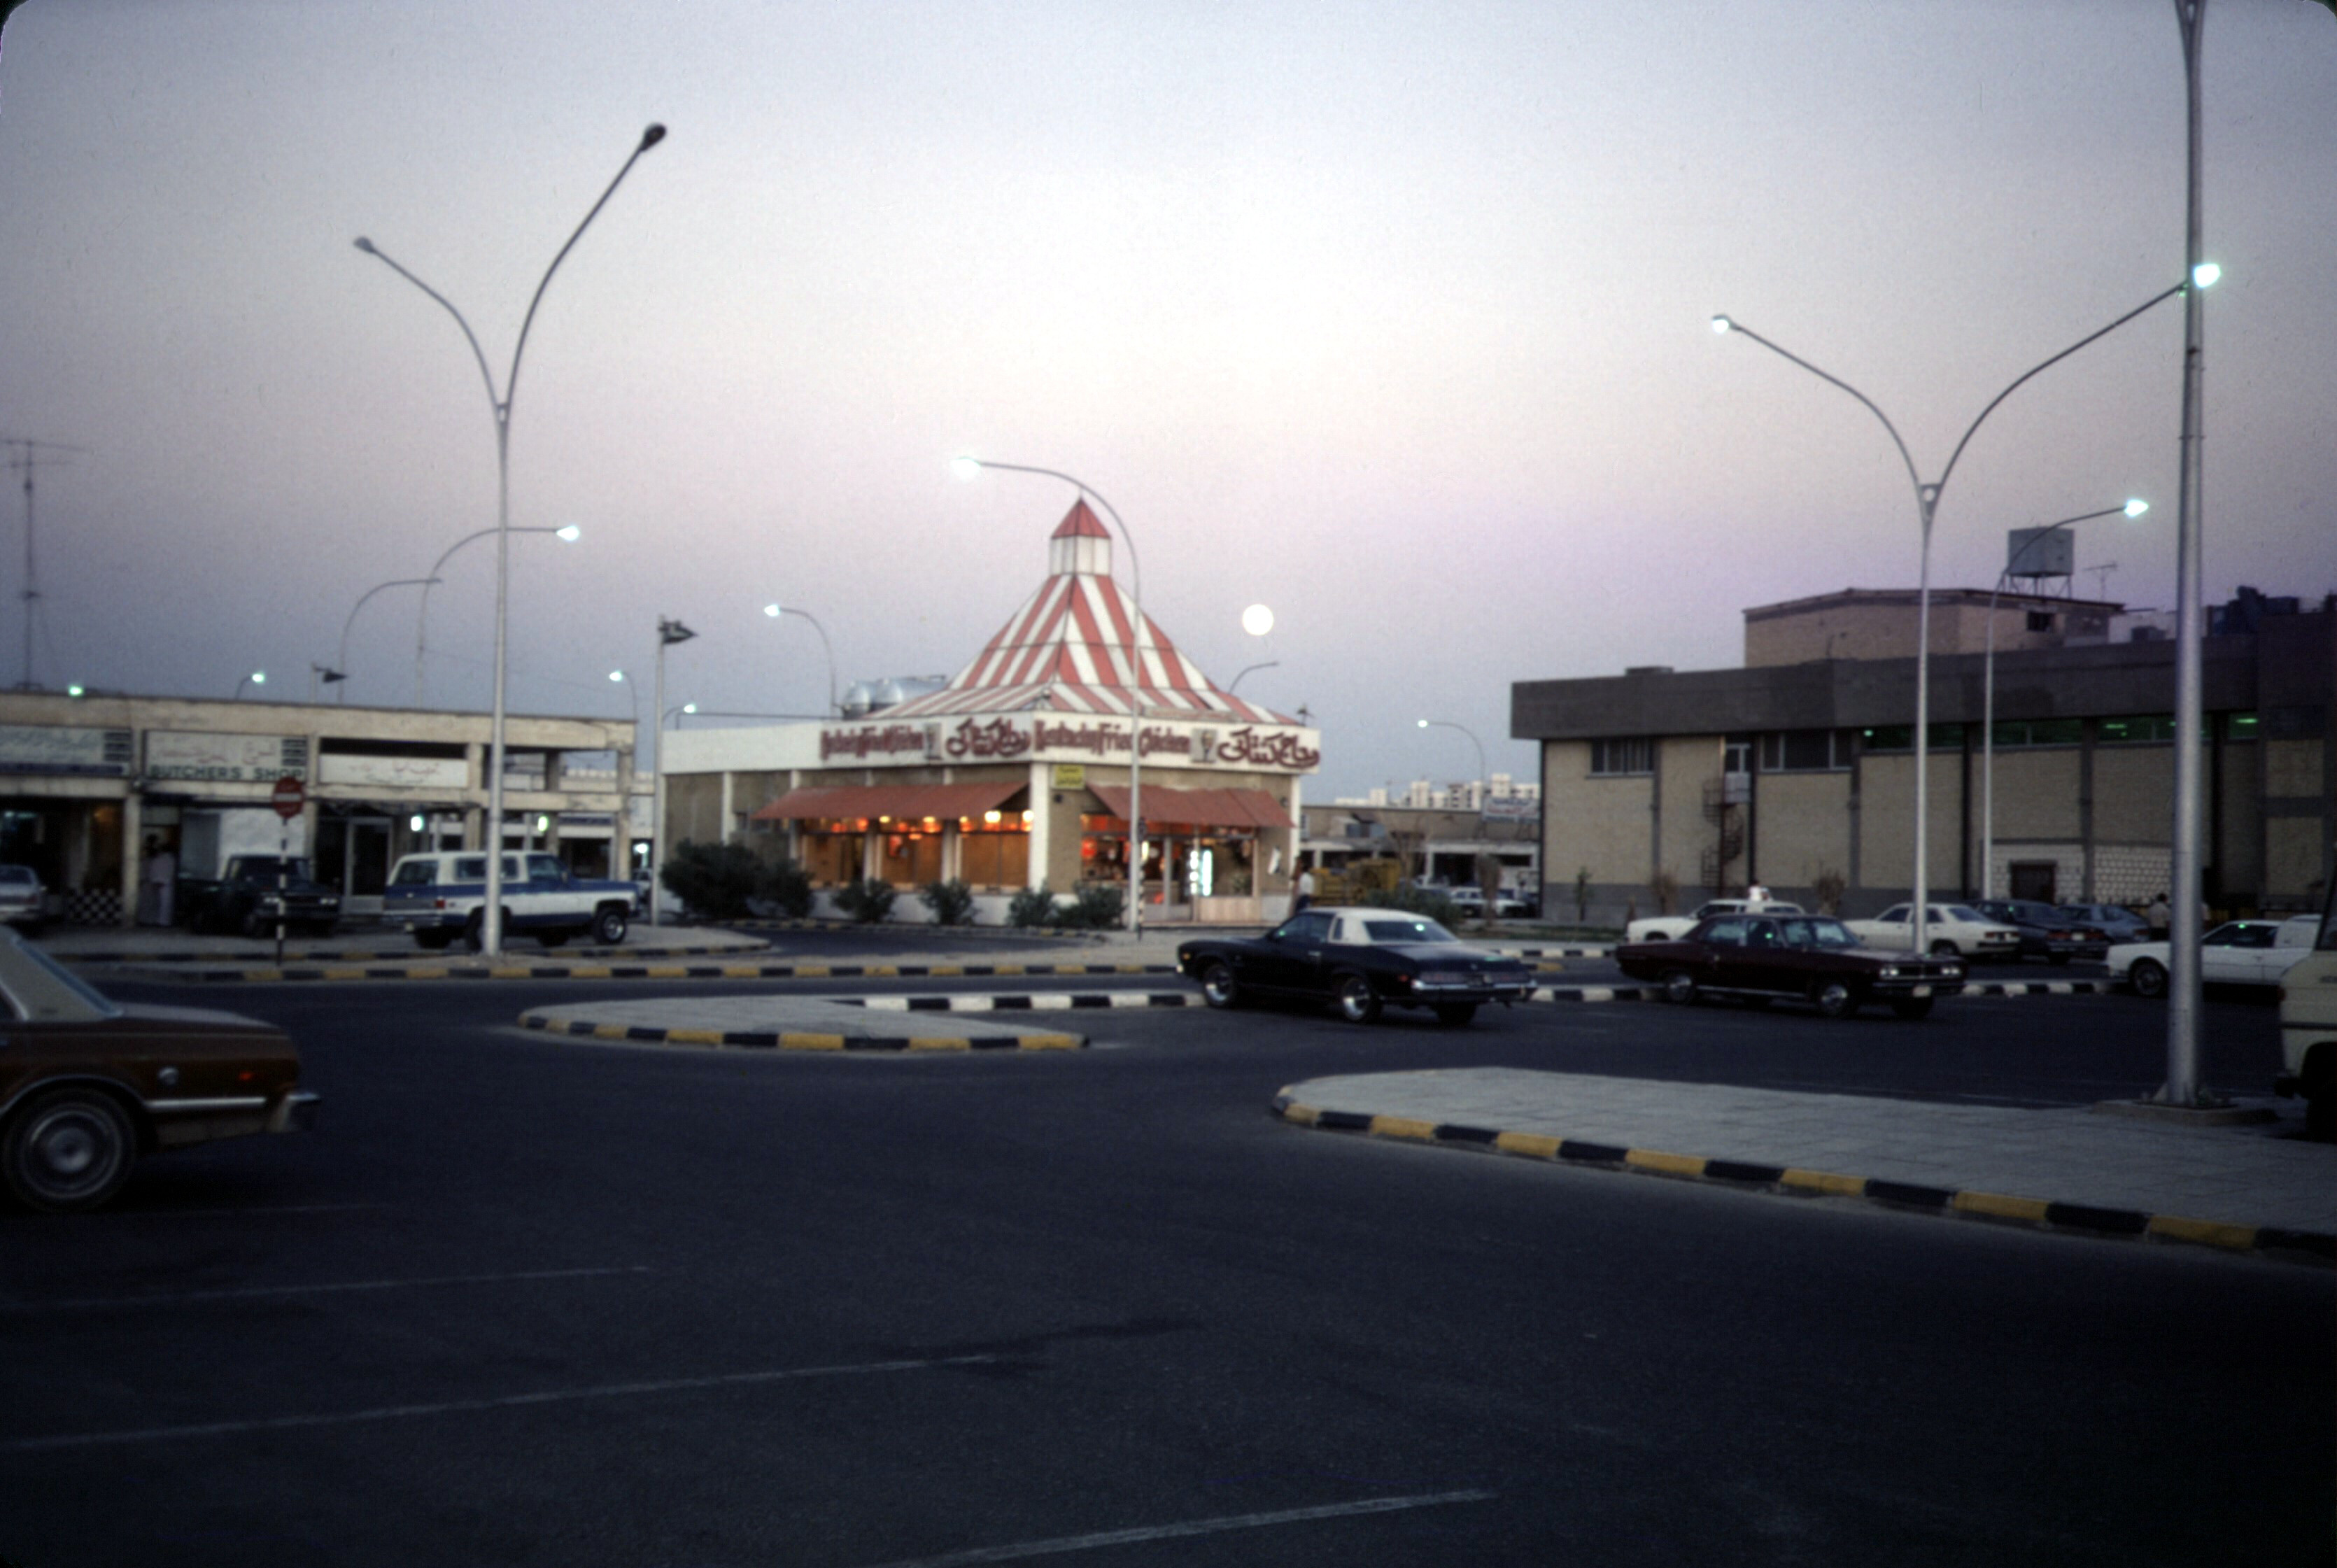 A KFC restaurant in Kuwait City, 1980